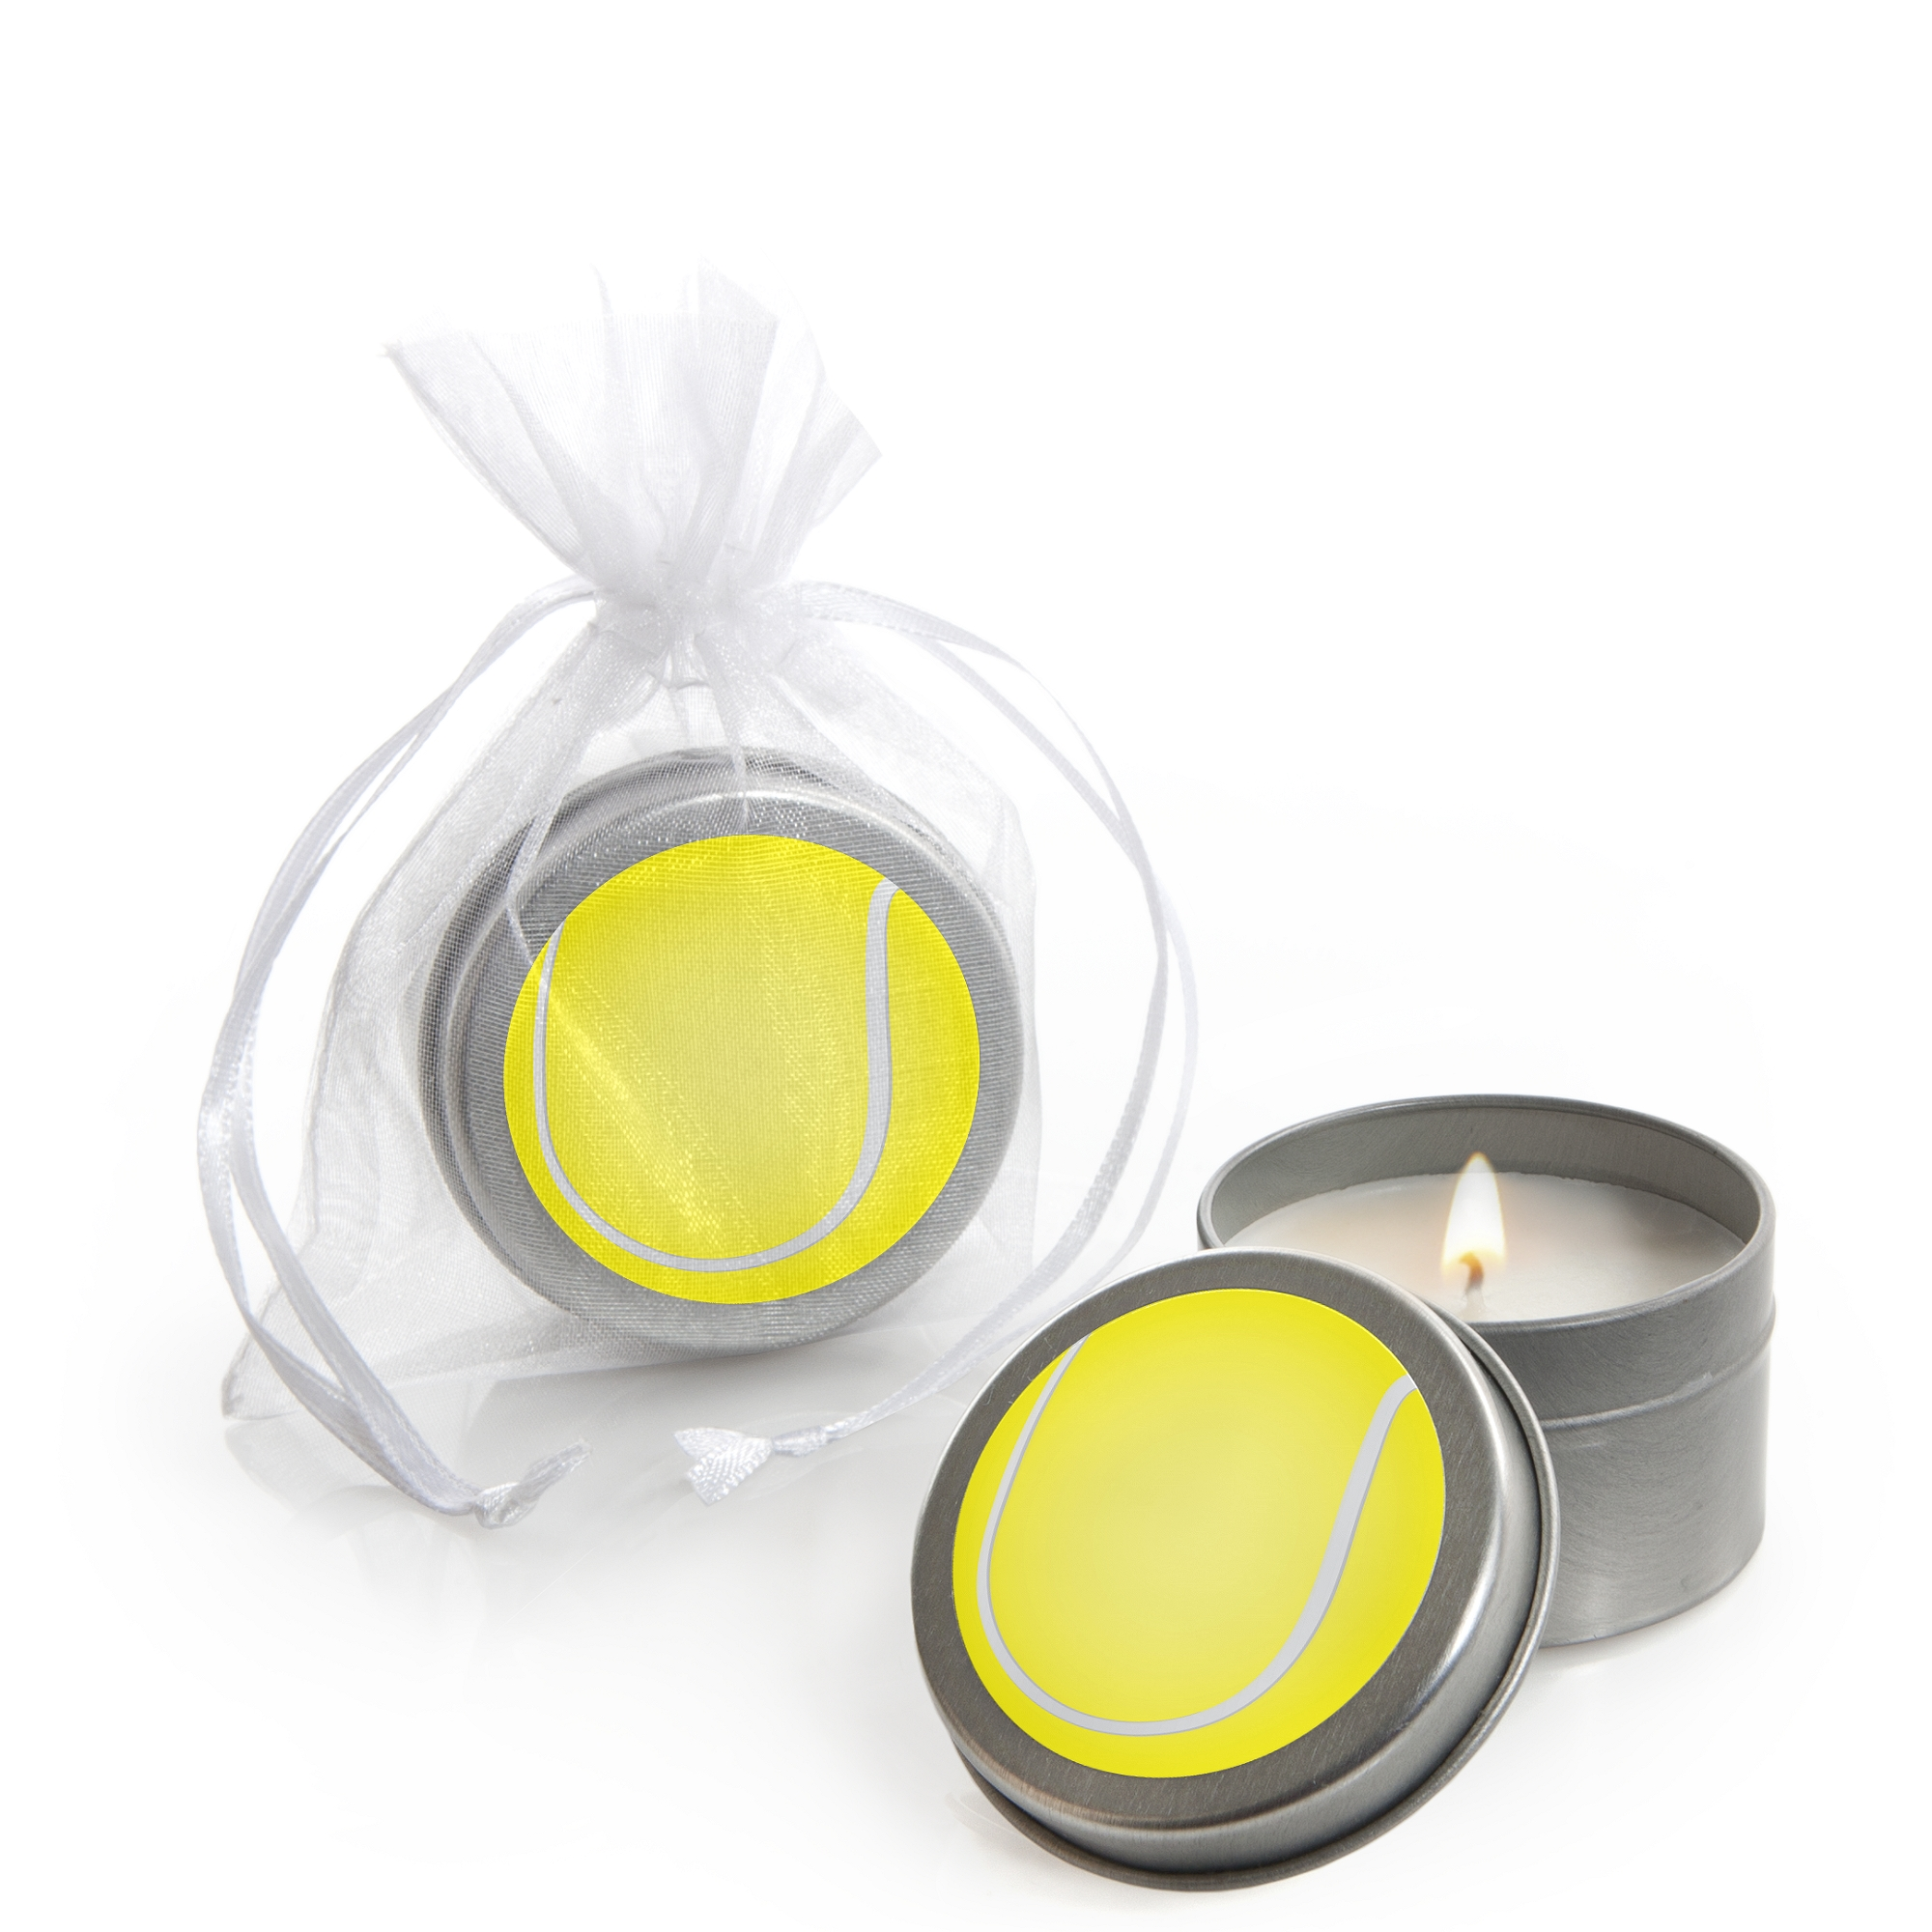 You Got Served - Tennis - Candle Tin Baby Shower or Tennis Ball Birthday Party Favors - Set of 12